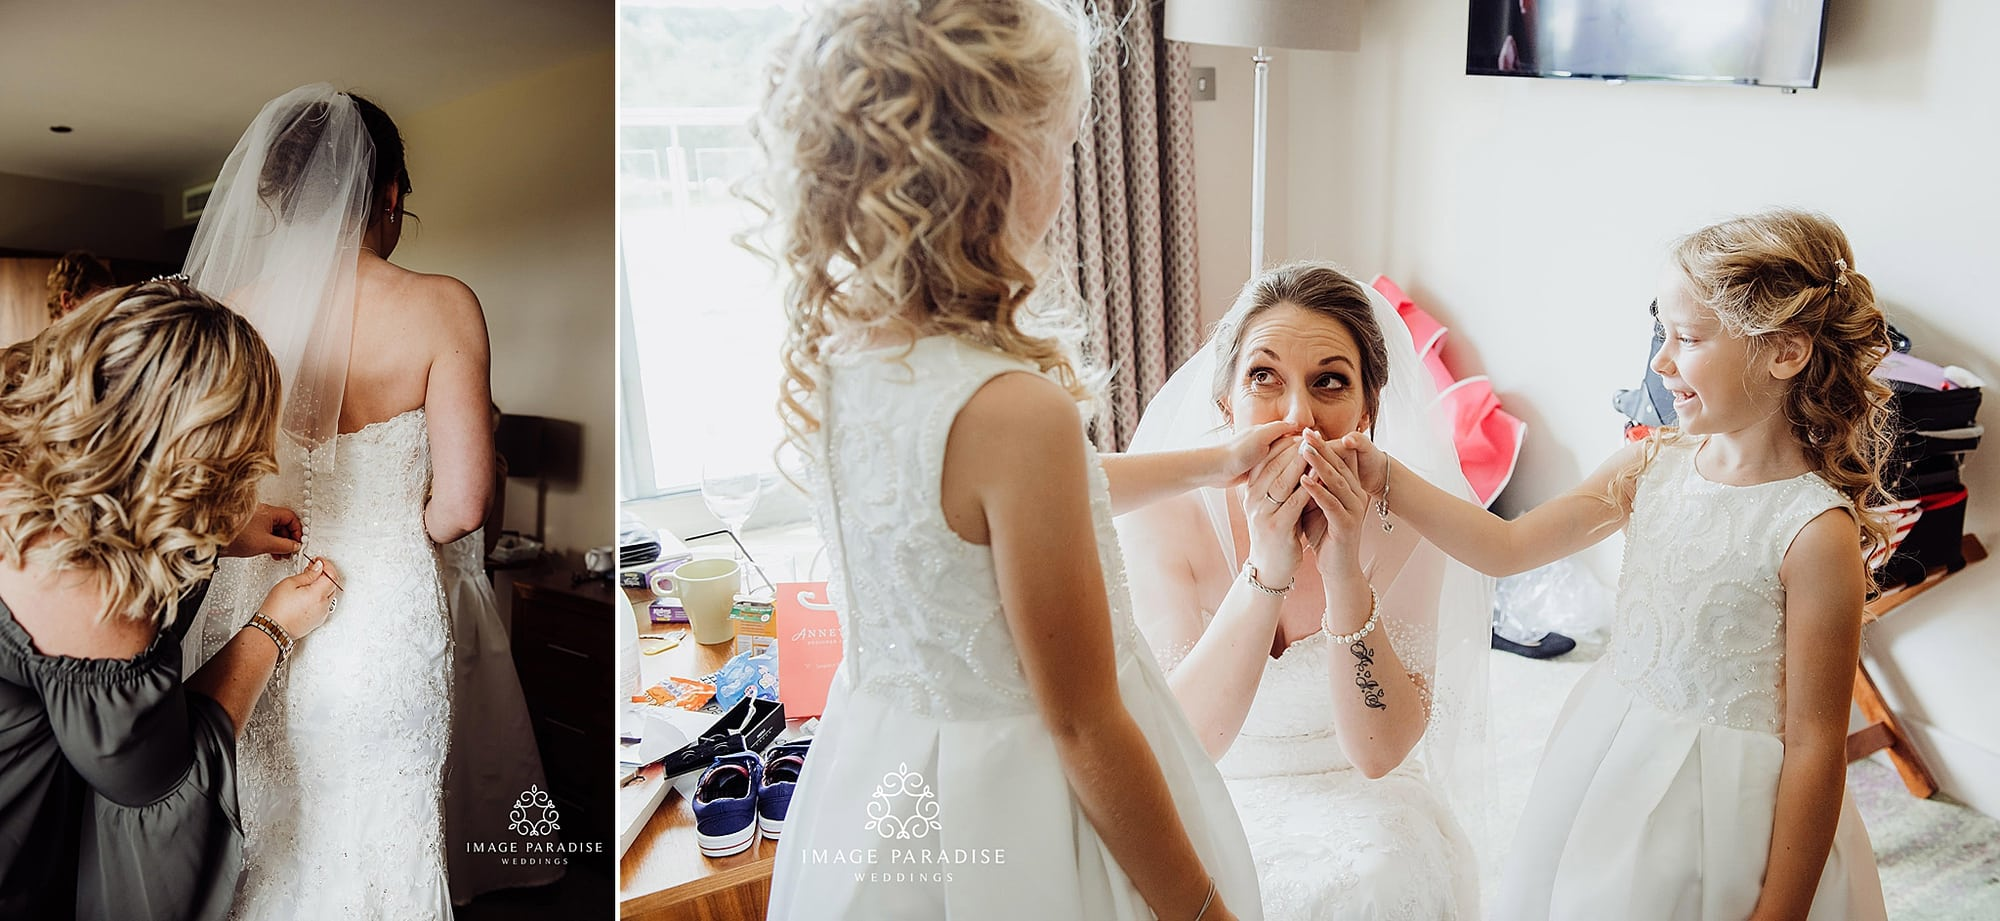 bride putting on her dress and getting ready with bridesmaids